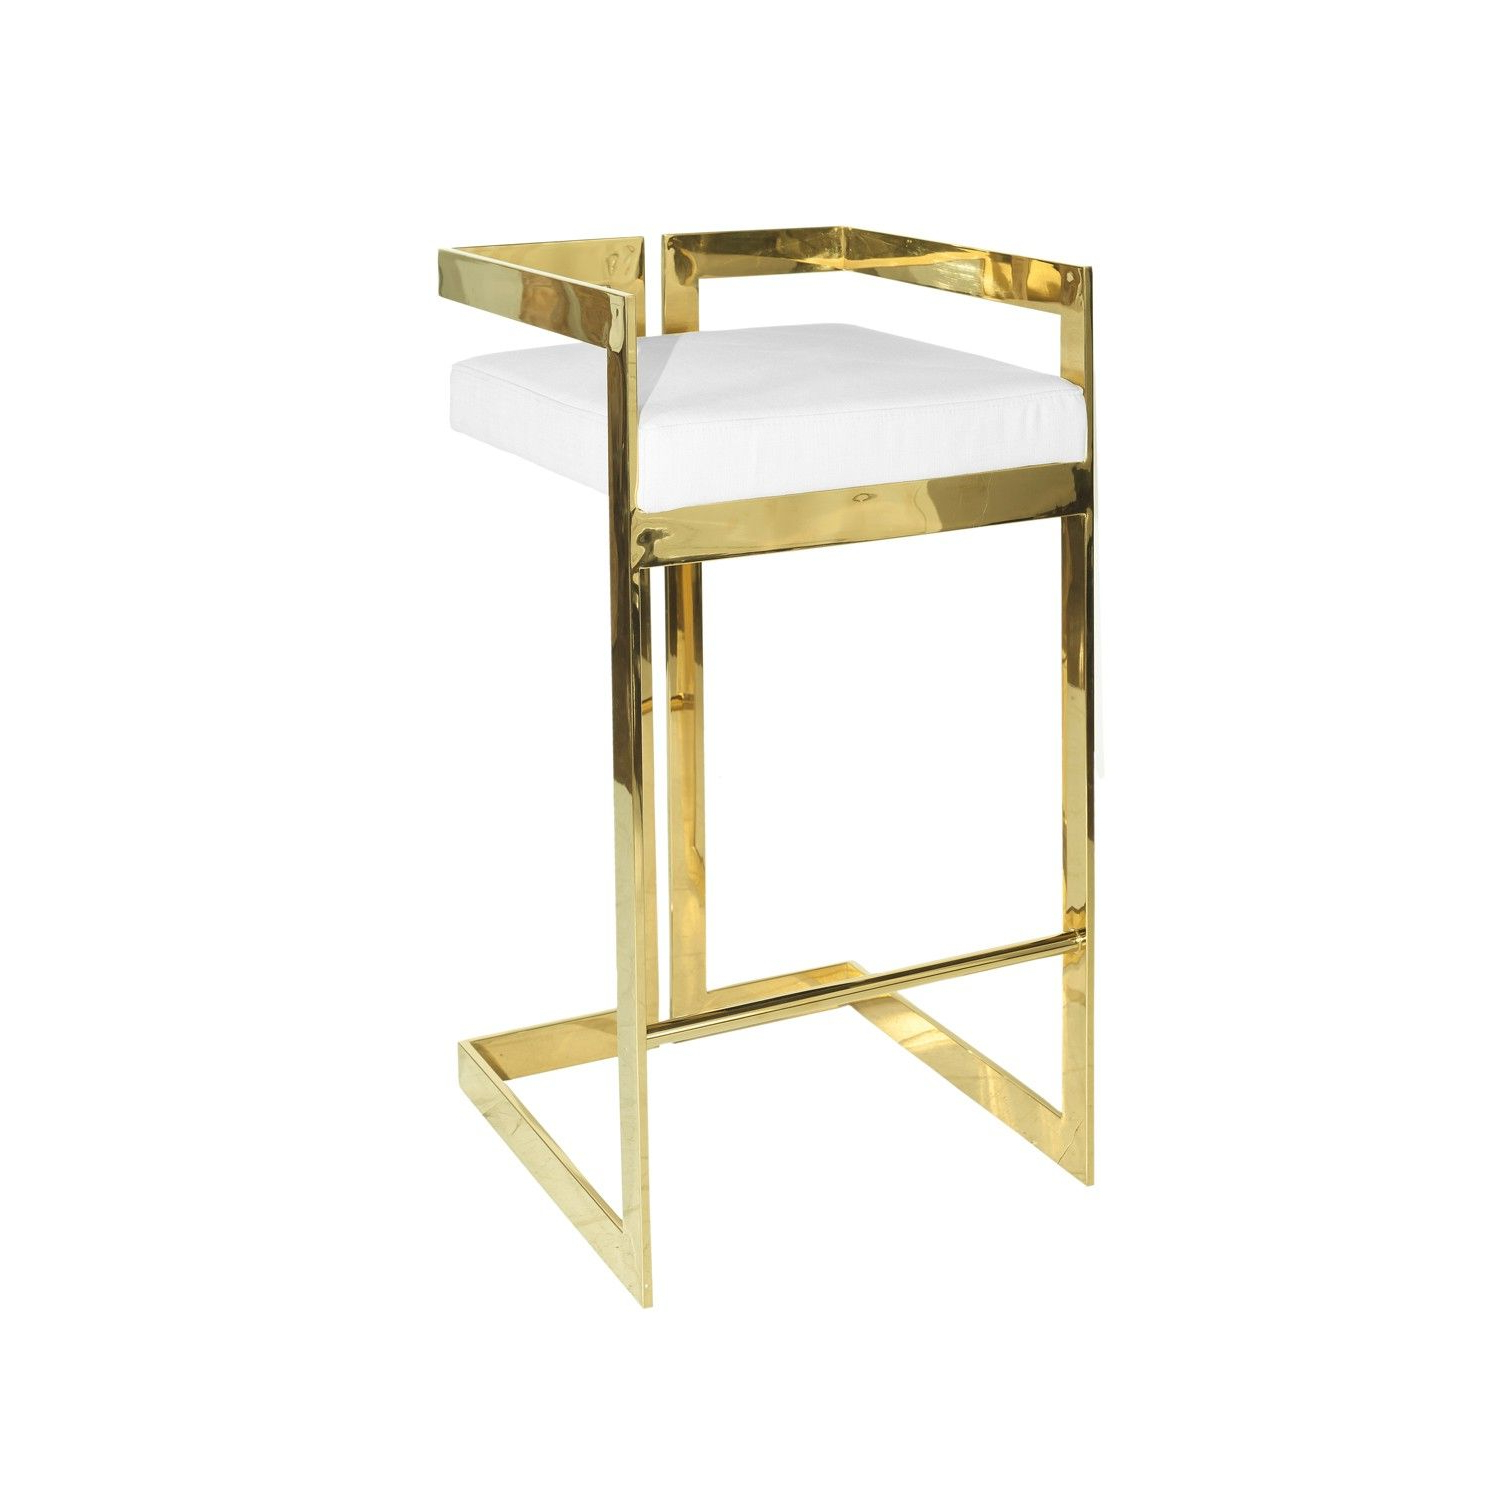 Most Popular Bar Stool Inspiration (View 4 of 25)